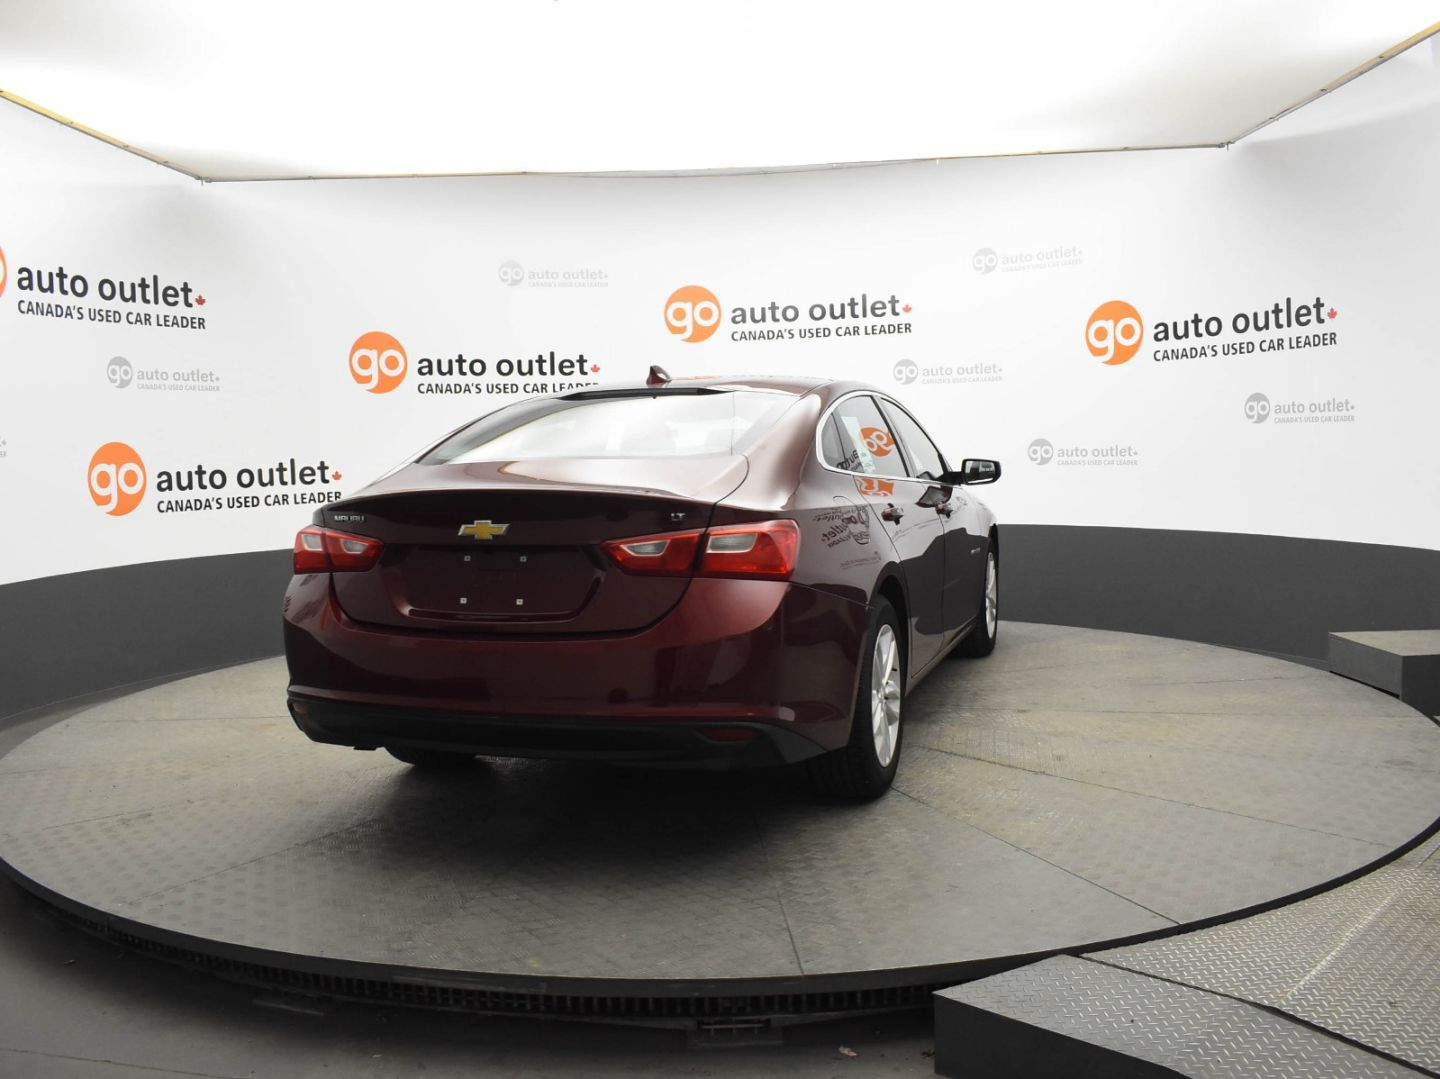 2016 Chevrolet Malibu LT for sale in Leduc, Alberta